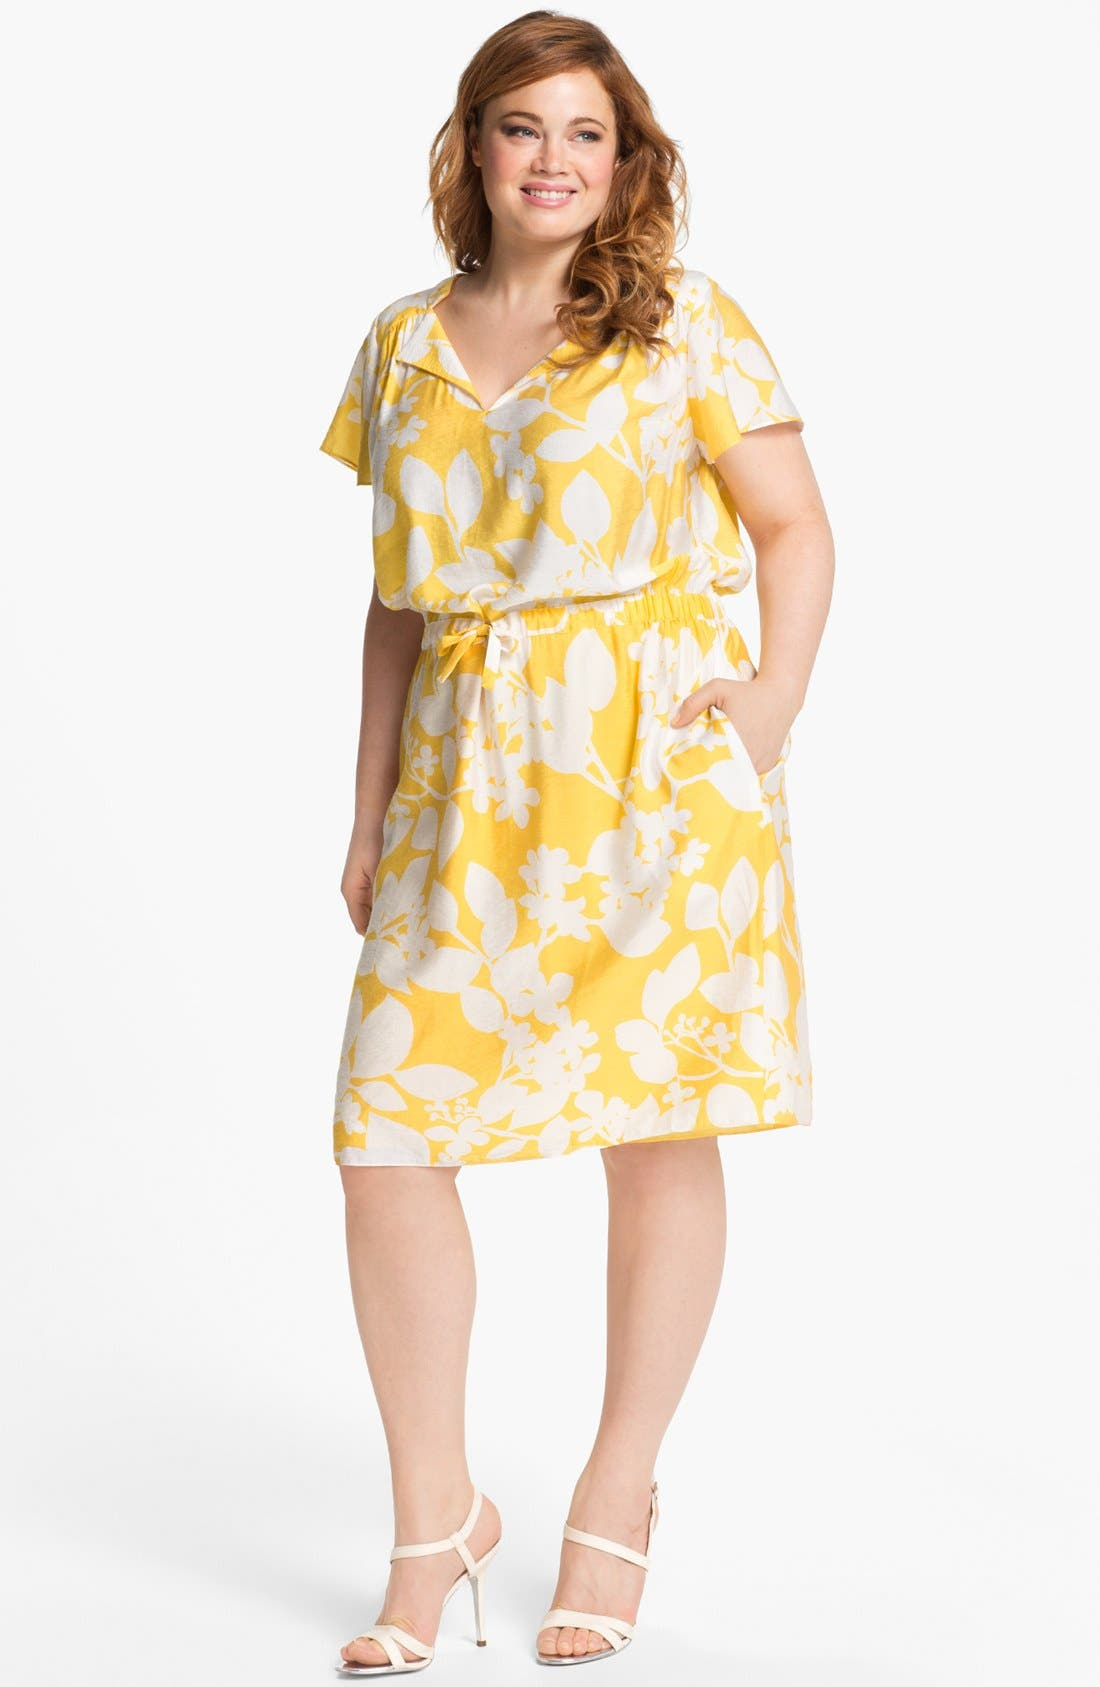 Alternate Image 1 Selected - Adrianna Papell Print Shirtdress (Plus Size)